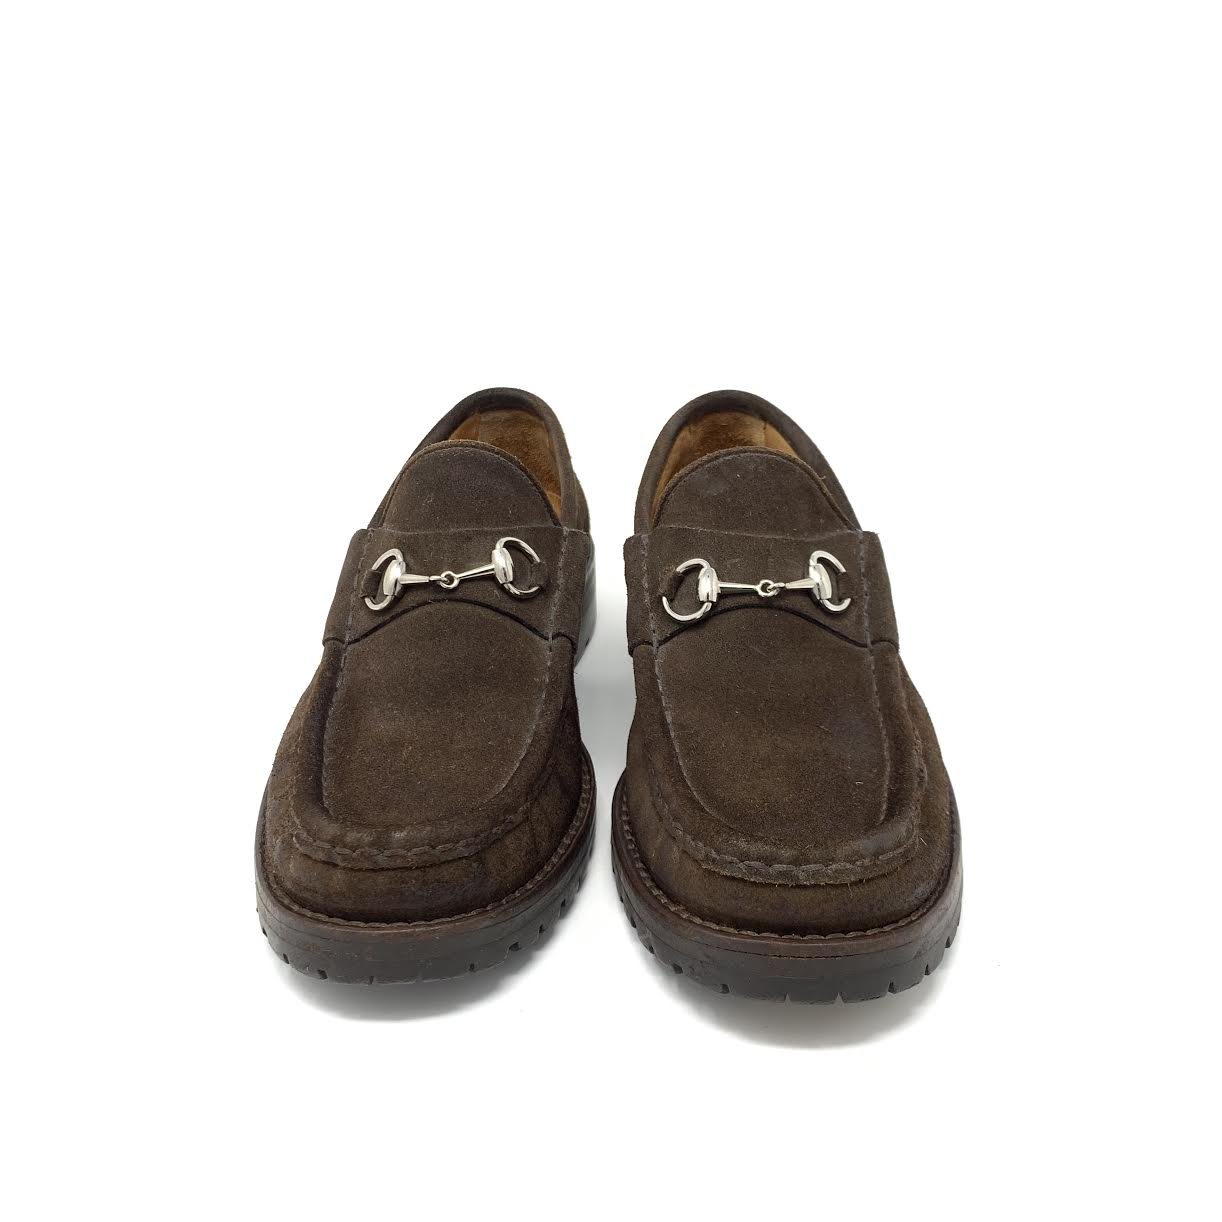 b93bed41d1c Share Share on Facebook Tweet Tweet on Twitter Pin it Pin on Pinterest. Gucci  Brown Suede Horsebit Loafers ...